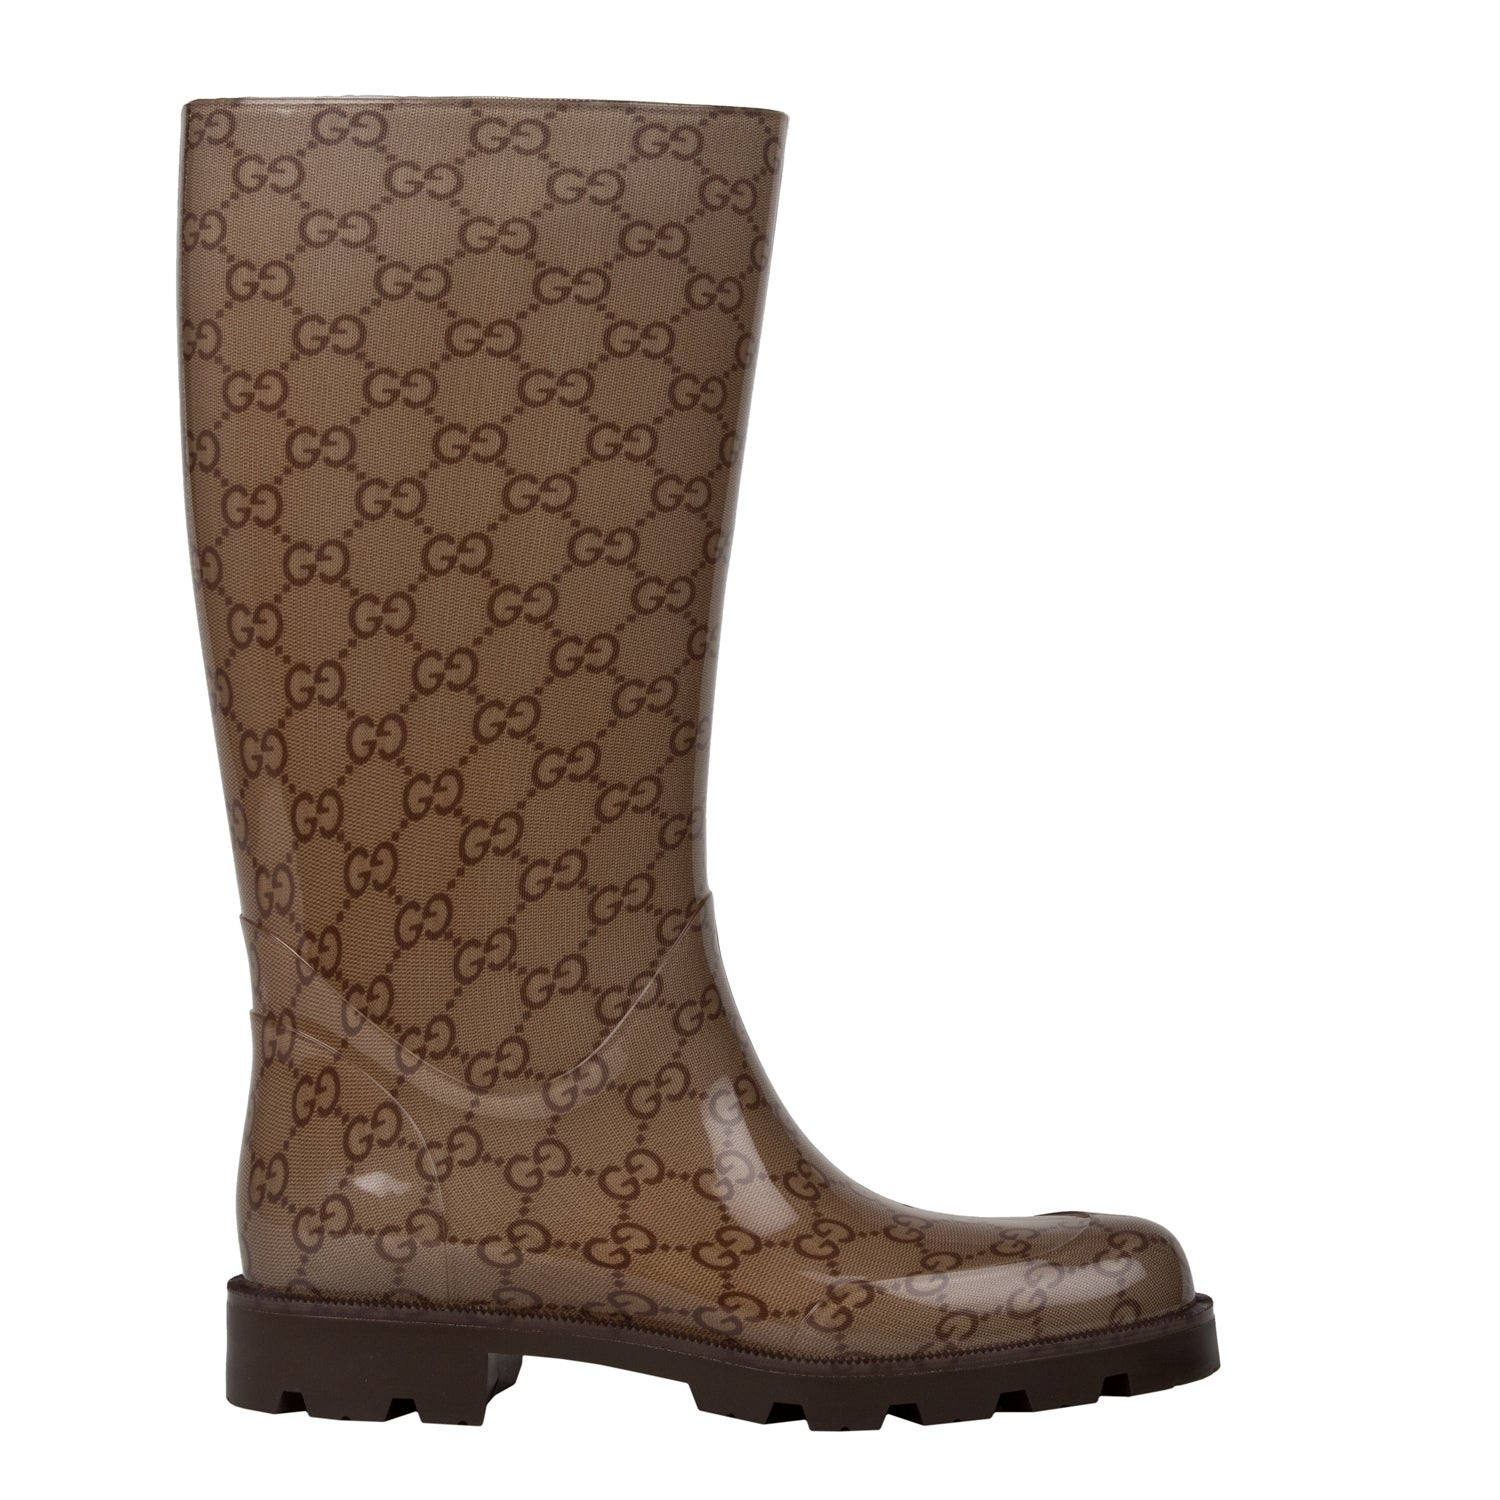 319b8794ad0a Shop Gucci Women s Edimburg GG Flat Rainboot - Free Shipping Today -  Overstock - 7385740